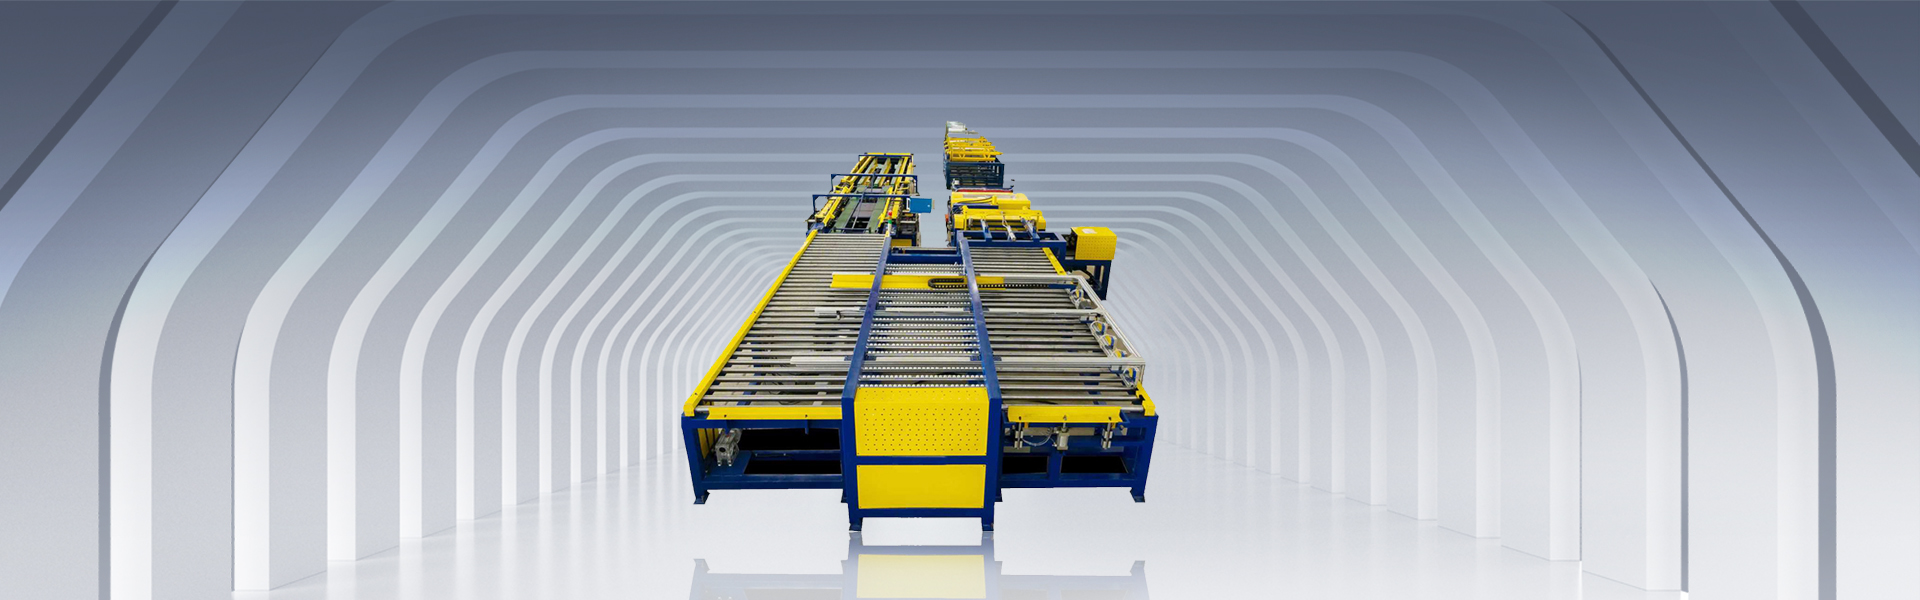 Automatic duct manufactuering line